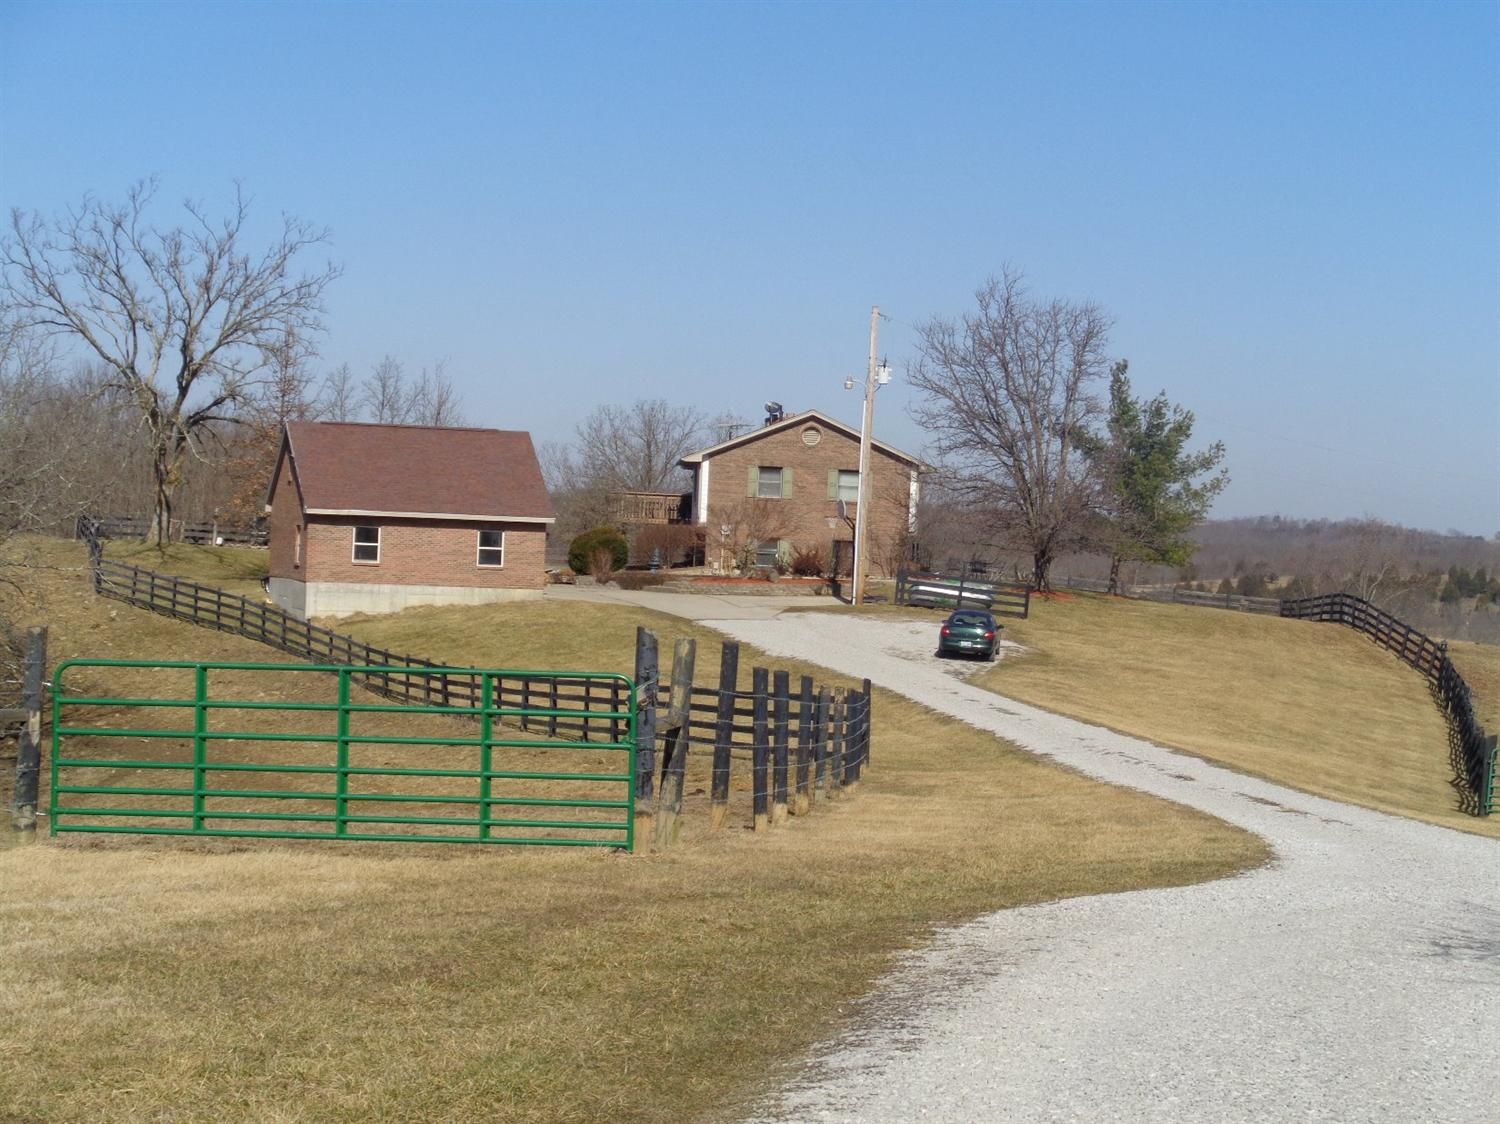 Image of Residential for Sale near Falmouth, Kentucky, in Pendleton county: 3.04 acres